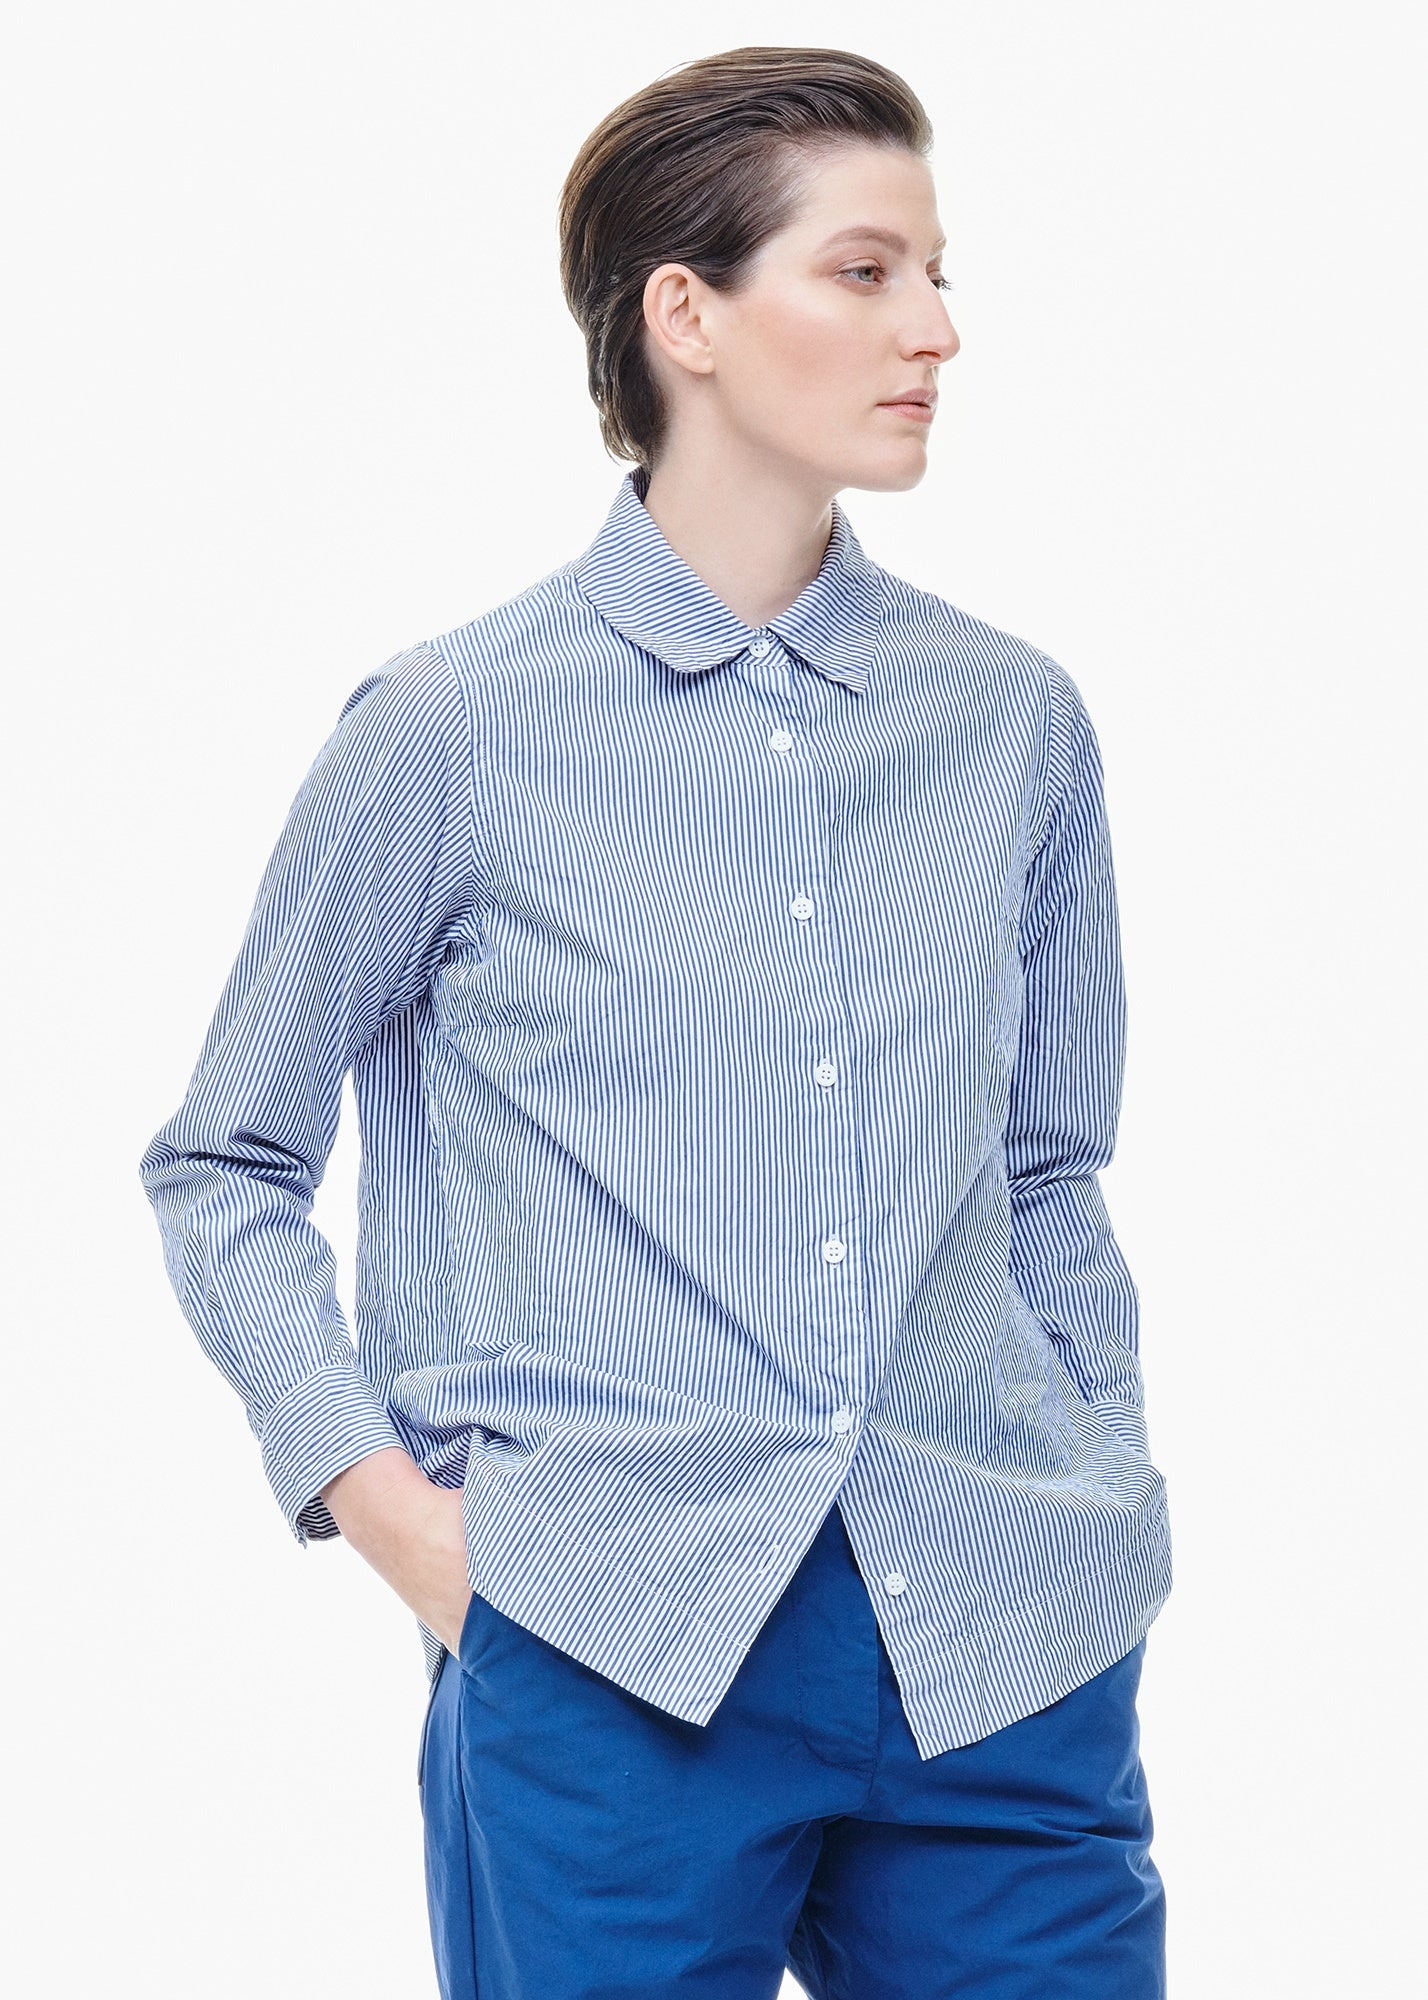 Chloe Shirt Blue/ White Stripe